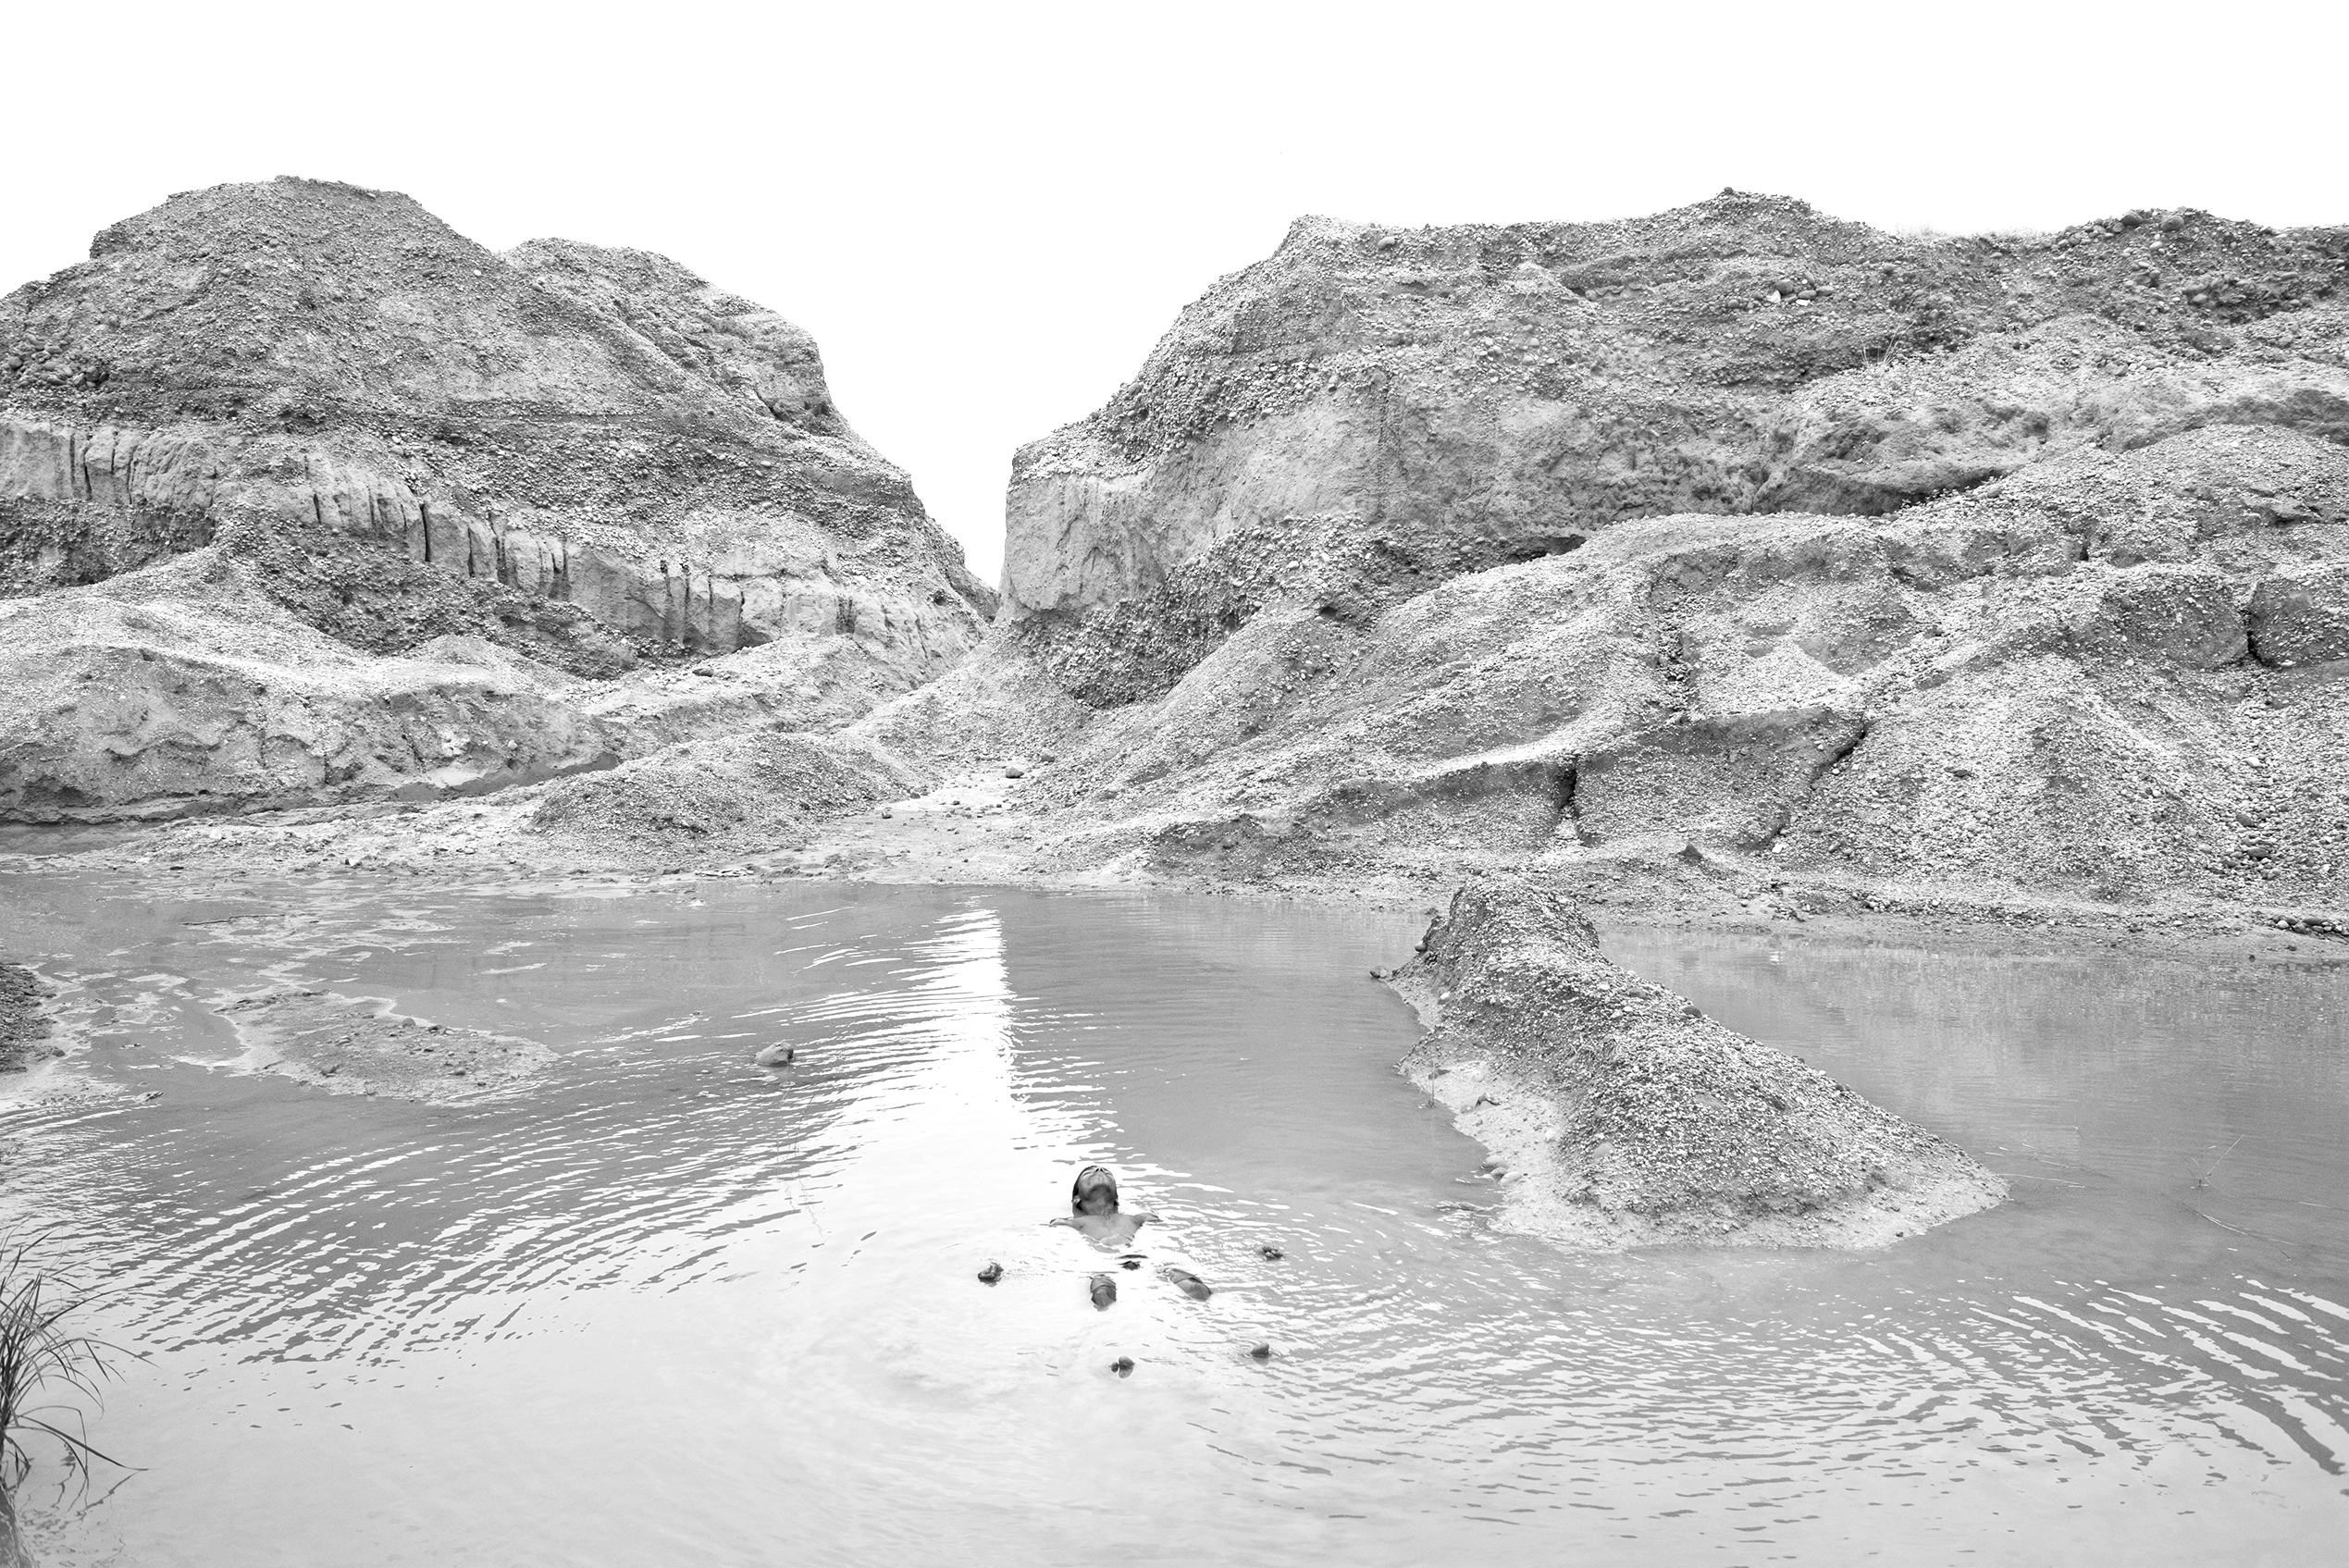 Black & white photograph of a man floating in a creek, an archival pigment print by artist Munem Wasif, entitled Land of Undefined Territory